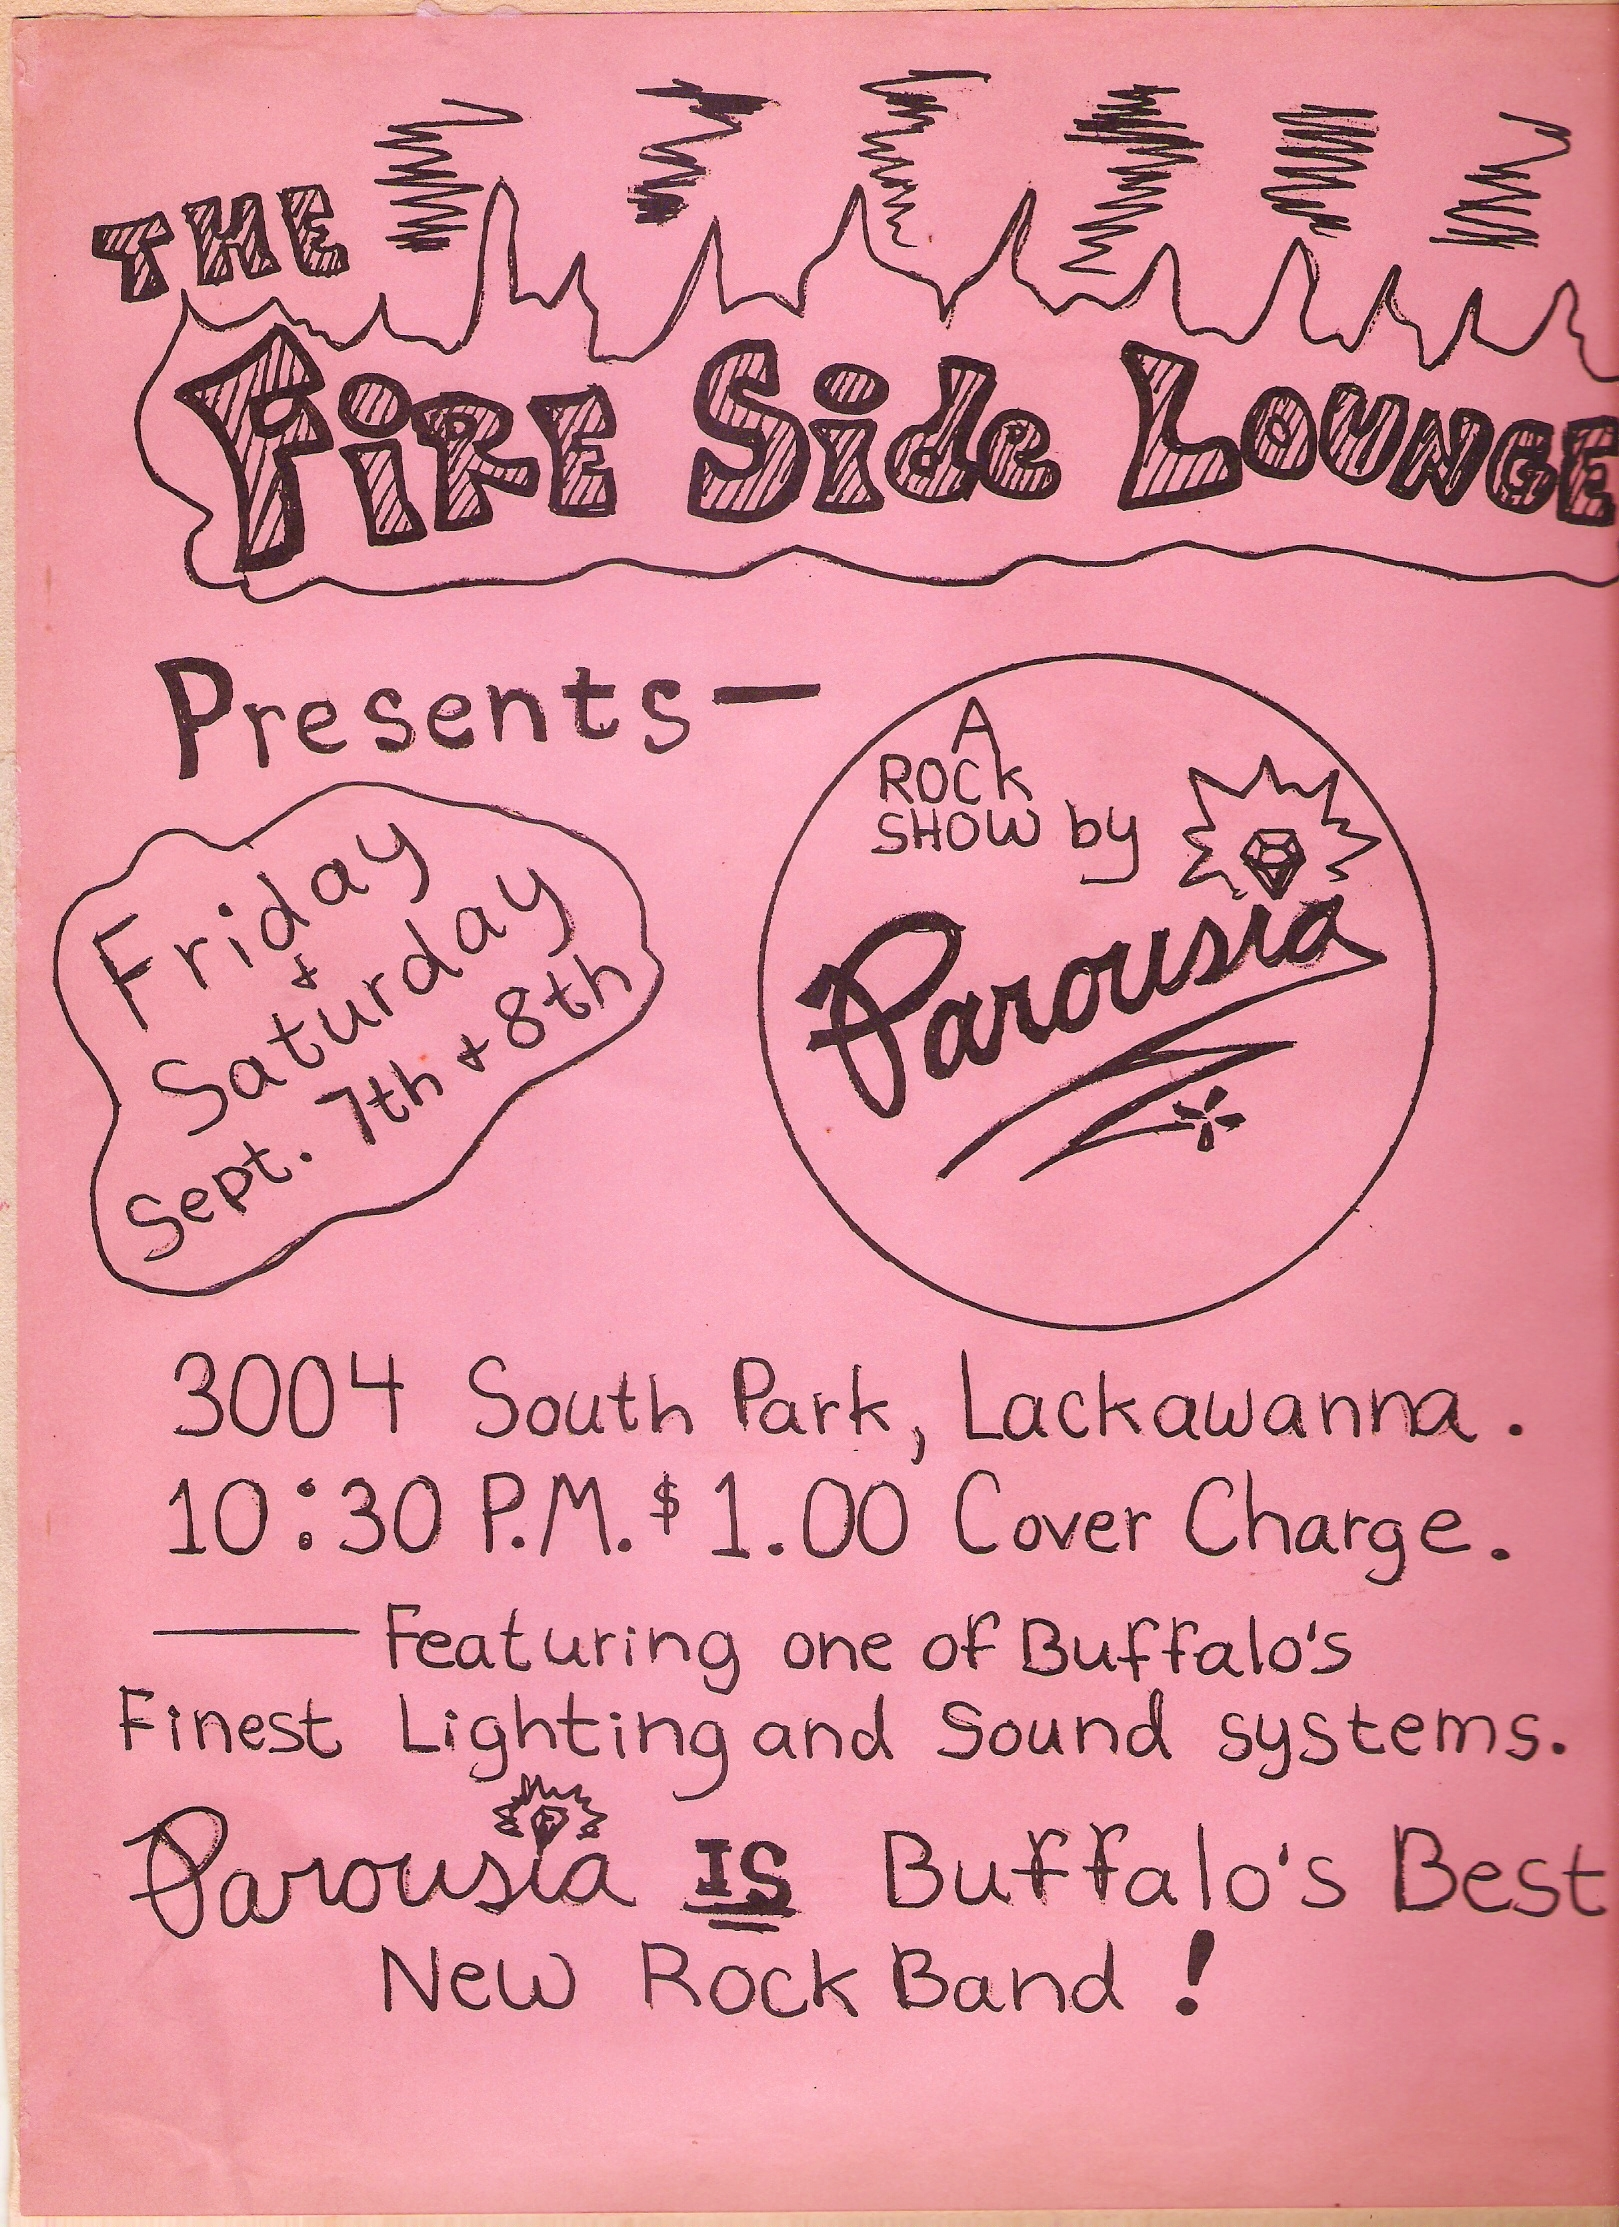 Flyer for Parousia at The Fireside Lounge, Lackawanna, NY. Sept 7-8, 1979